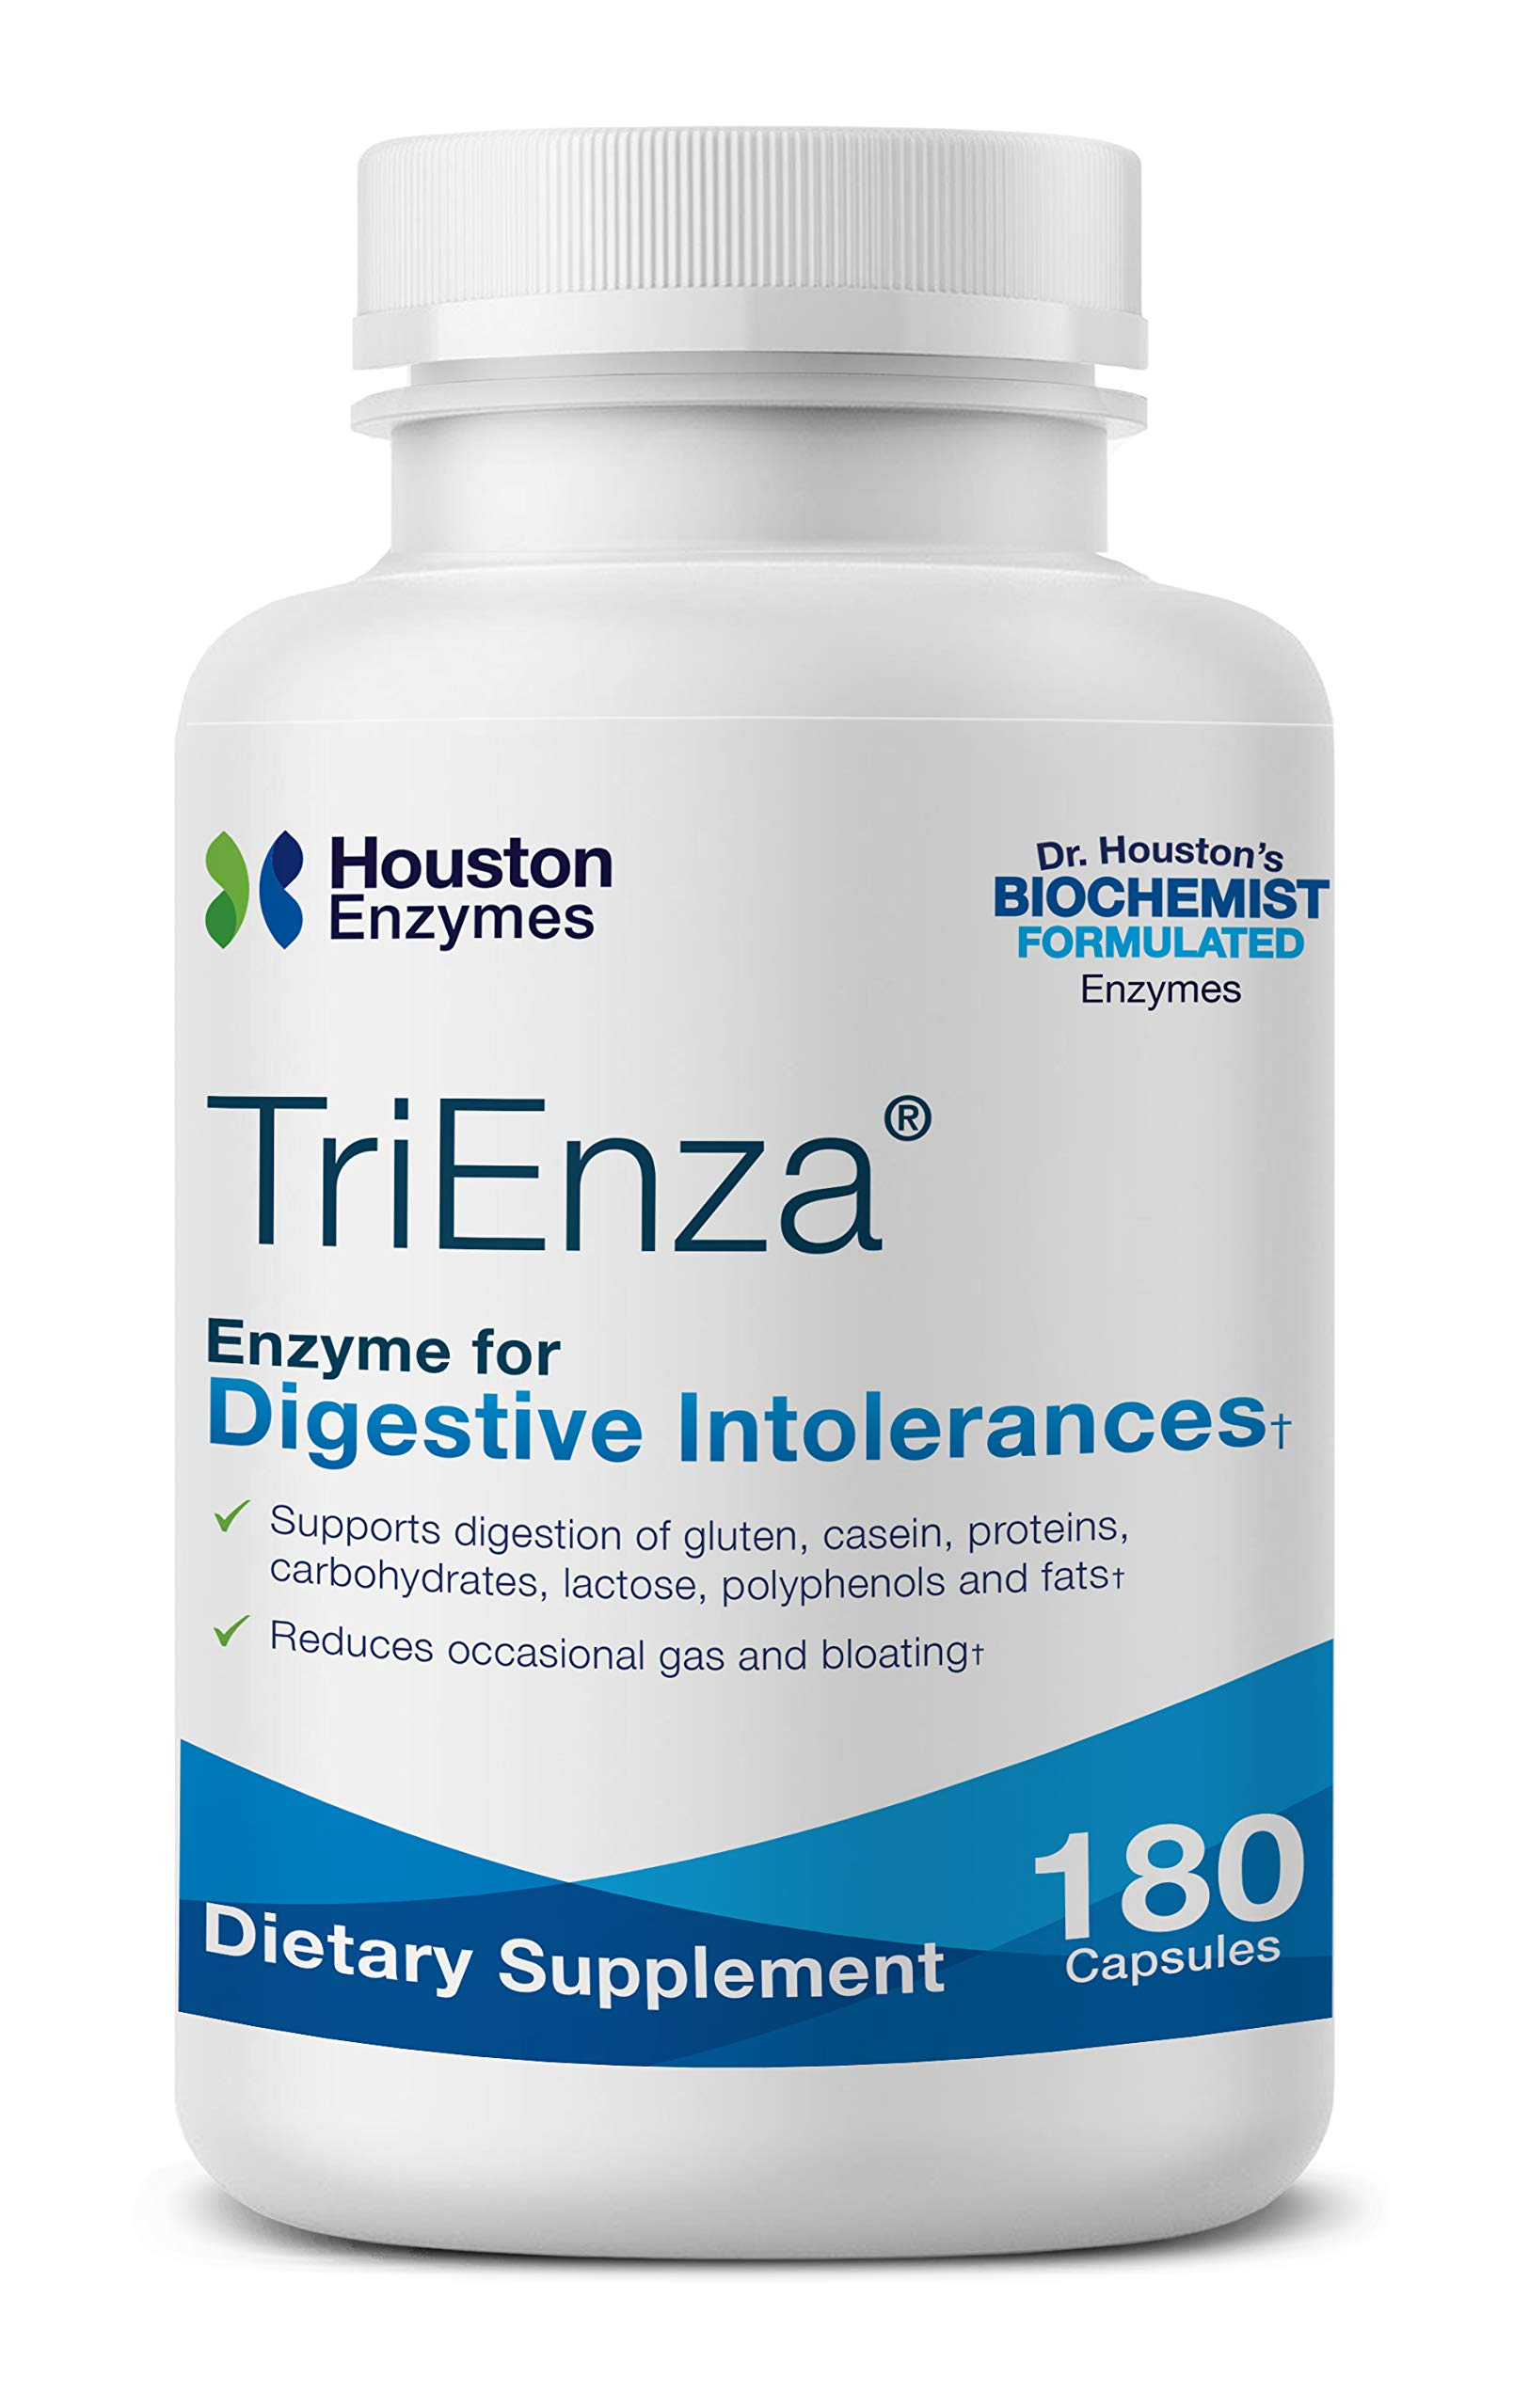 Houston Enzymes TriEnza - 180 Capsules (90 Doses) | Broad-Spectrum Enzymes for Digestive Intolerances | Supports Digestion of Gluten, Casein, Soy, Proteins, Carbohydrates, Sugars, Fats & Polyphenols by Houston Enzymes